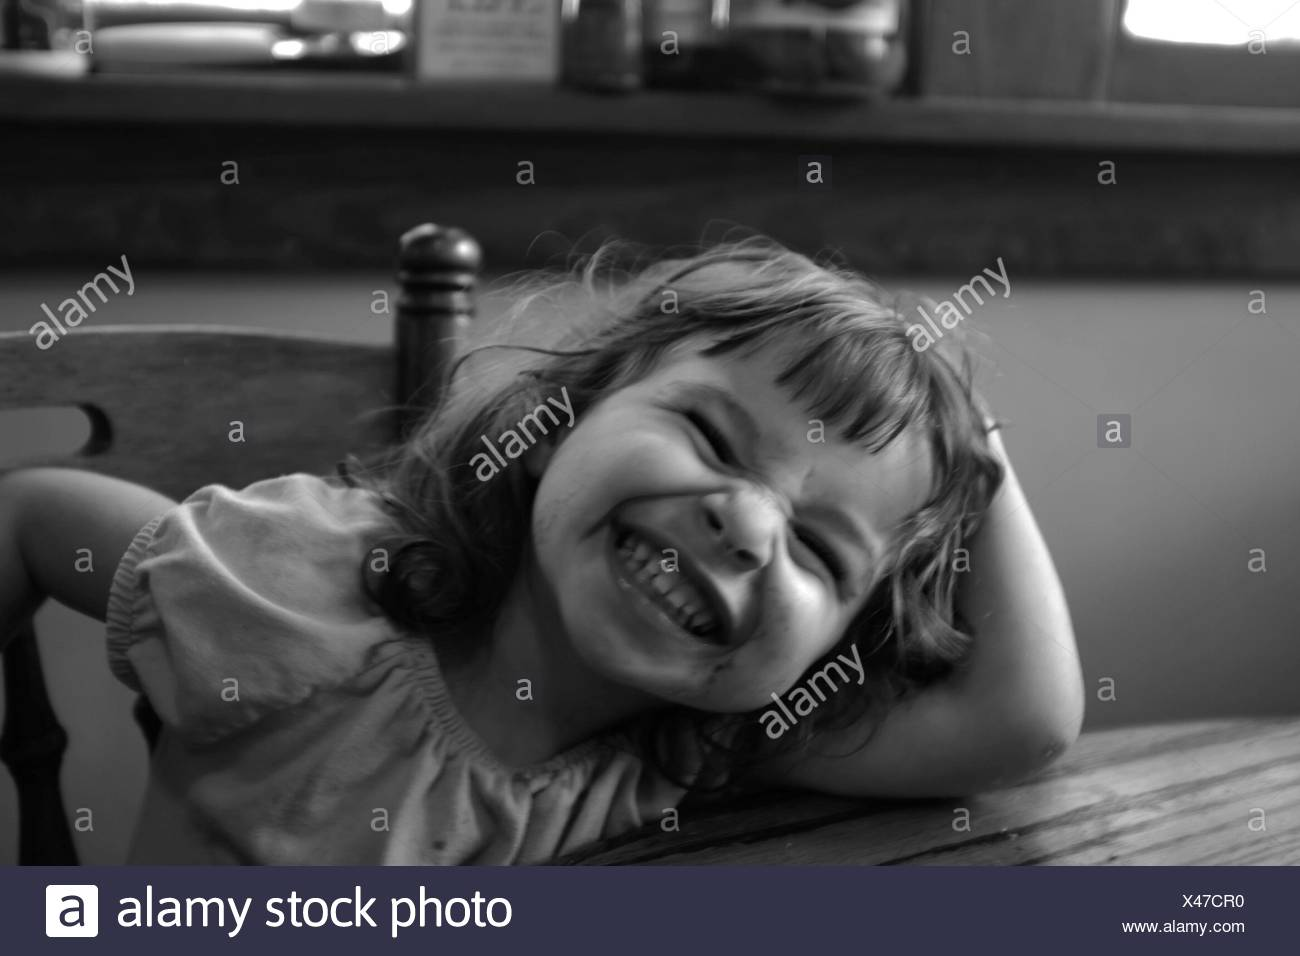 Happy Girl Making Face While Sitting On Chair - Stock Image